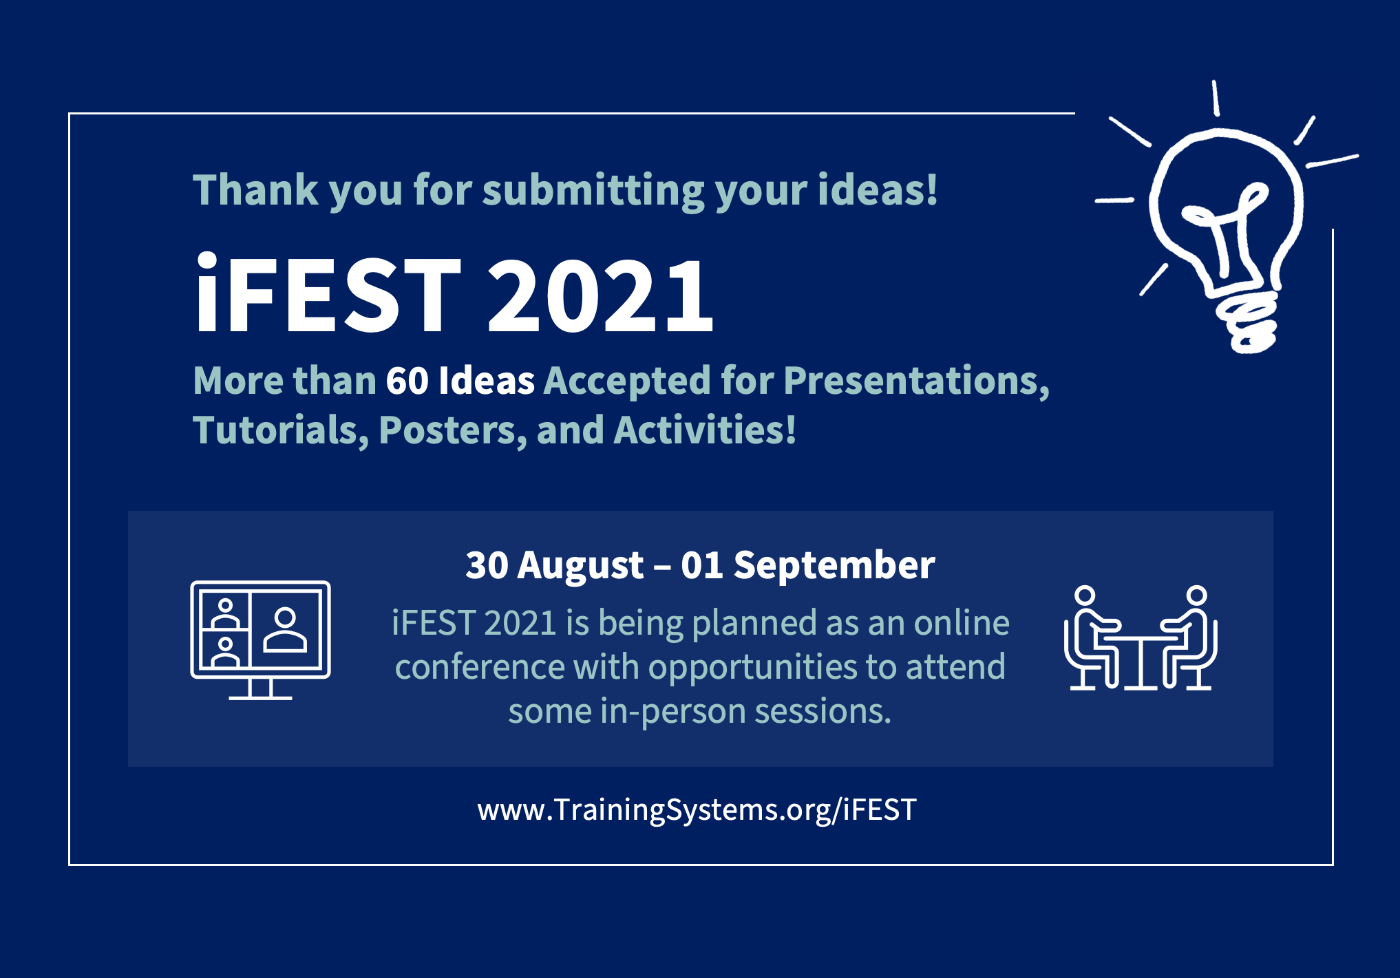 Artwork promoting iFEST 2021 sixty ideas accepted